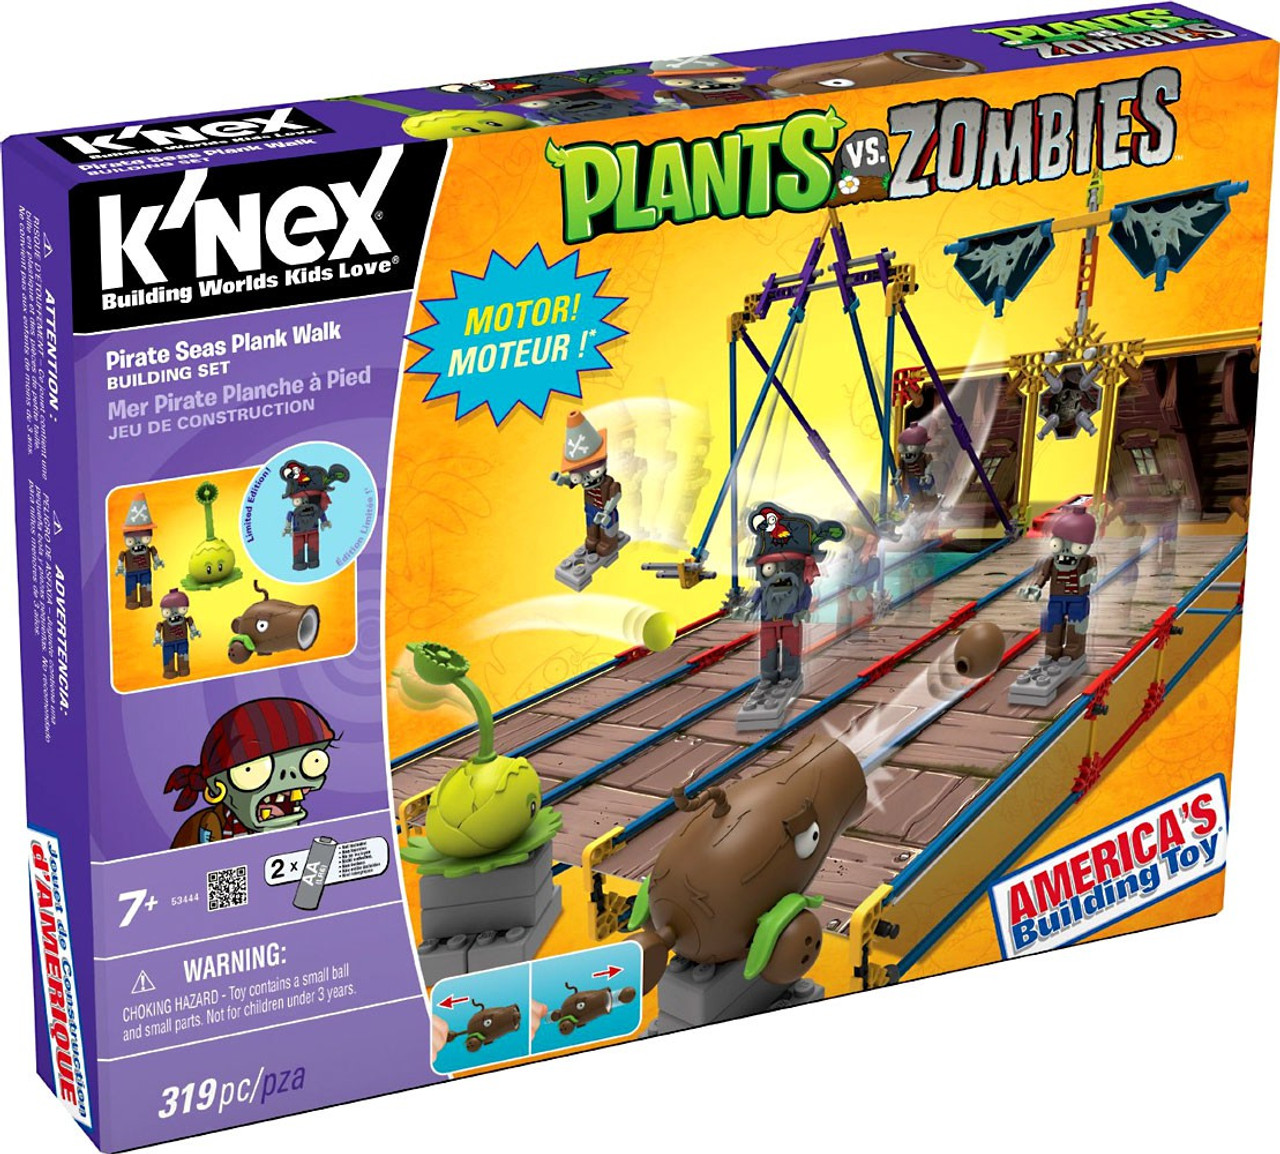 Knex plants vs zombies pirate seas plank walk set 53444 for Zombie build